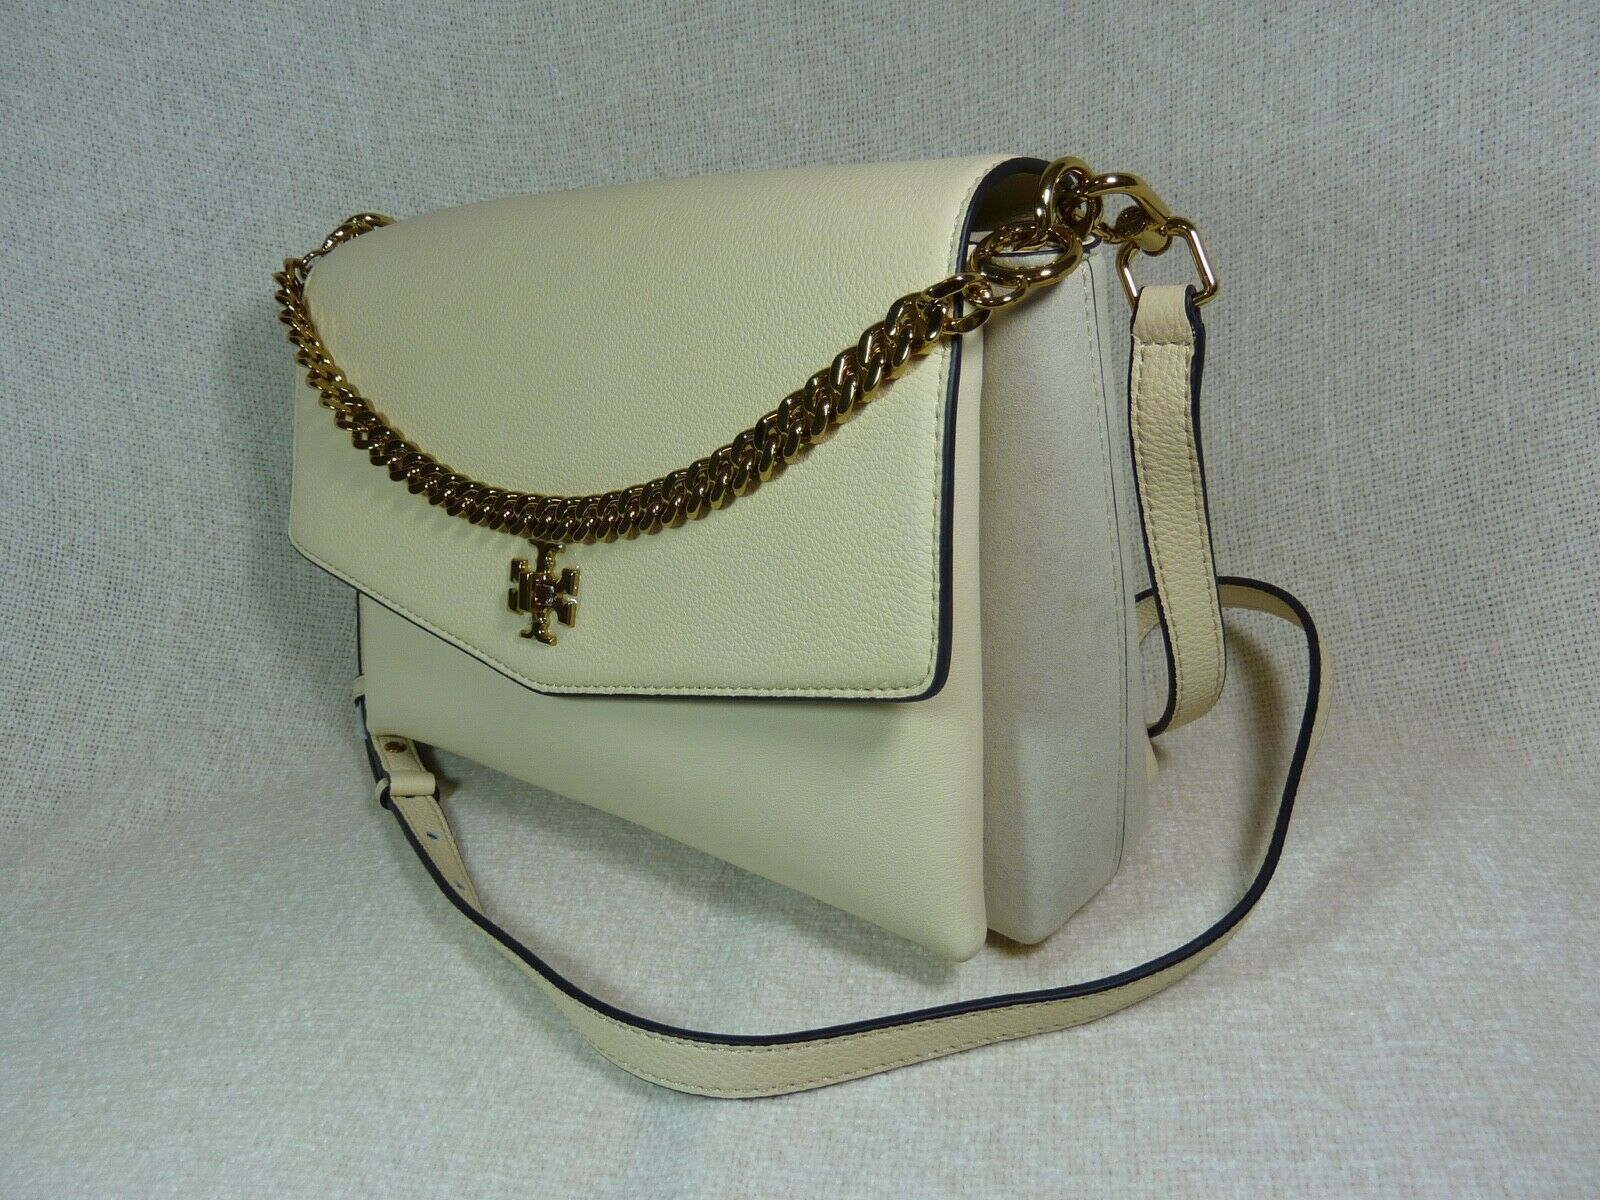 NWT Tory Burch New Cream KIRA Mixed-material Double-strap Shoulder Bag image 2